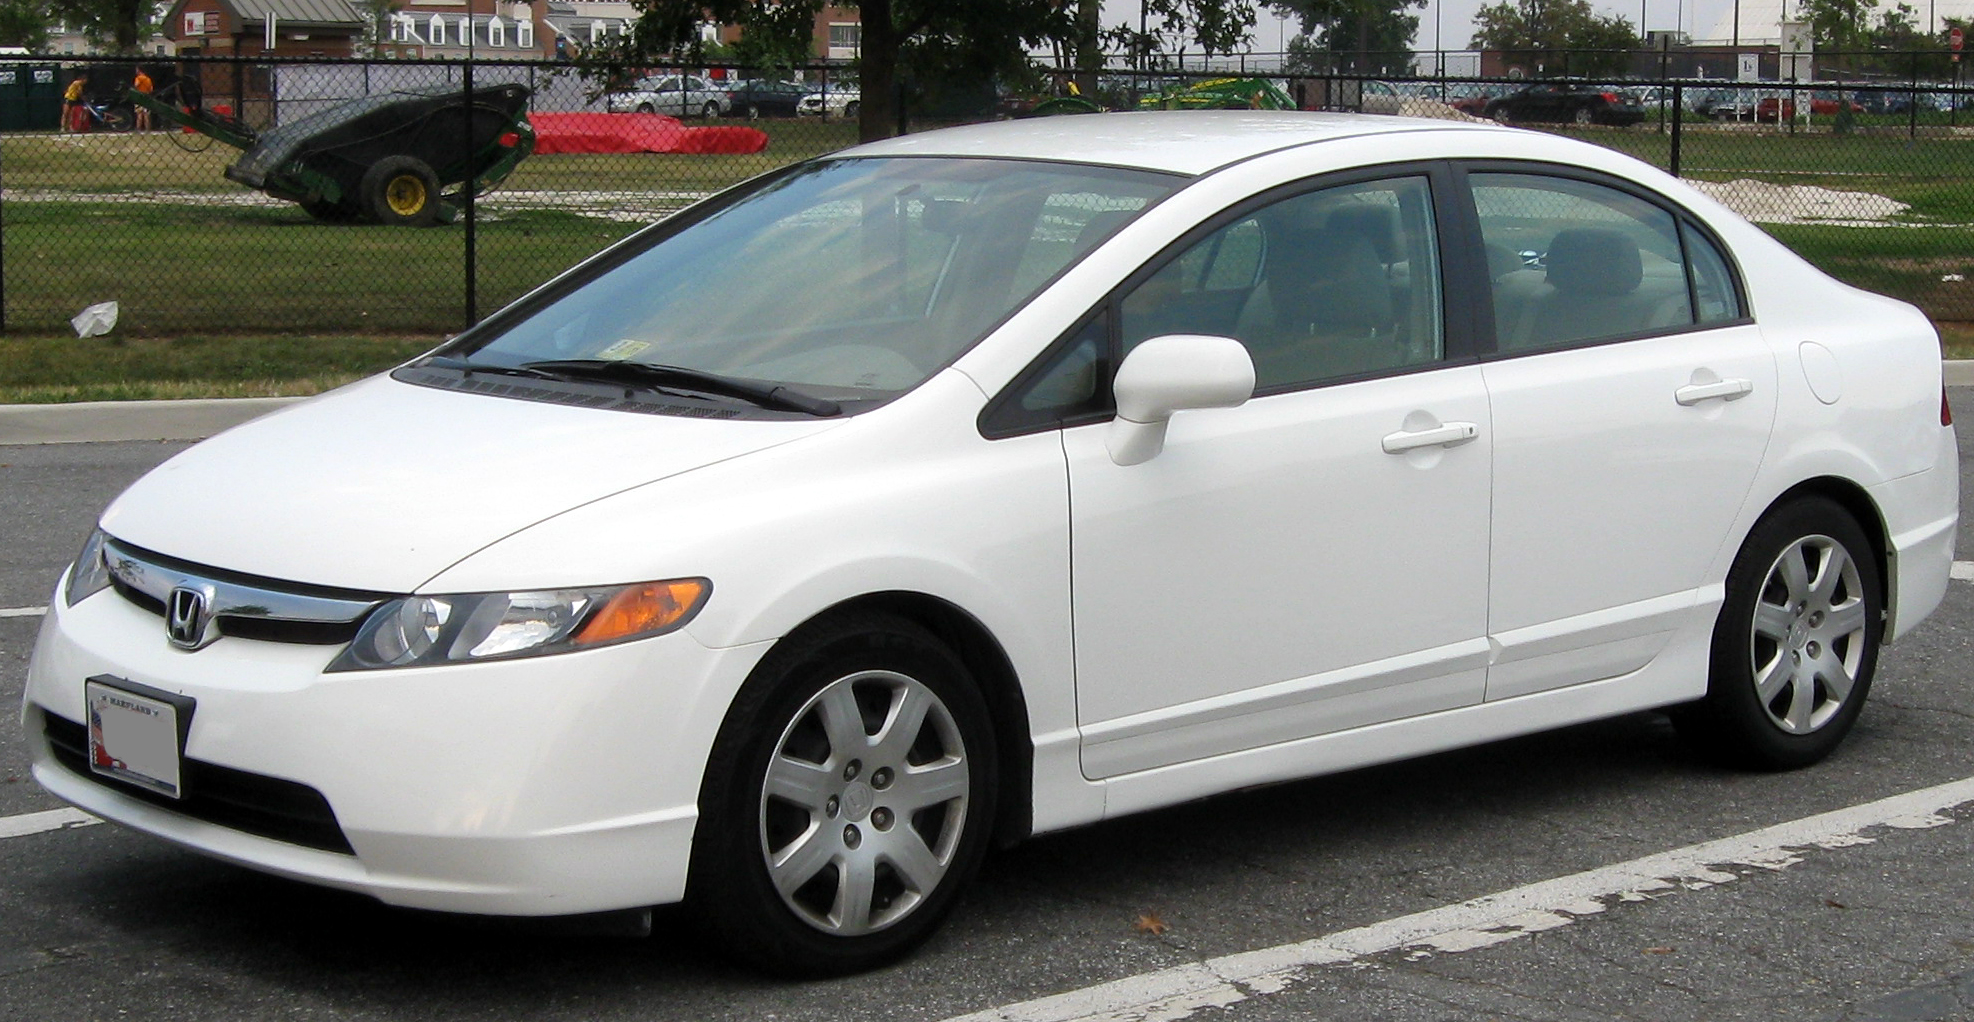 Honda Civic #6